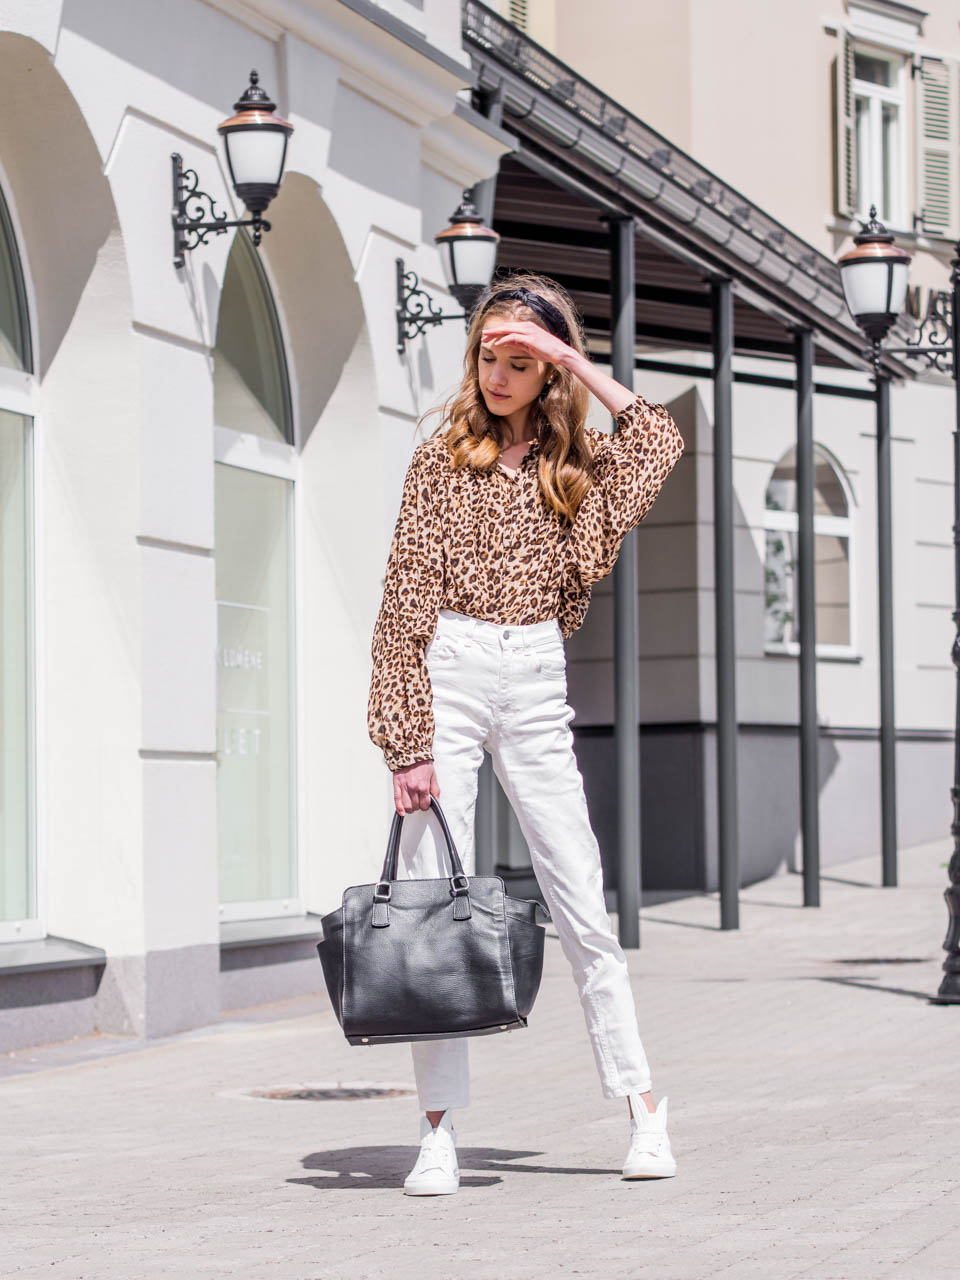 How to style leopard print: 8 outfits - Kuinka stailata leopardiprintti: 8 asua